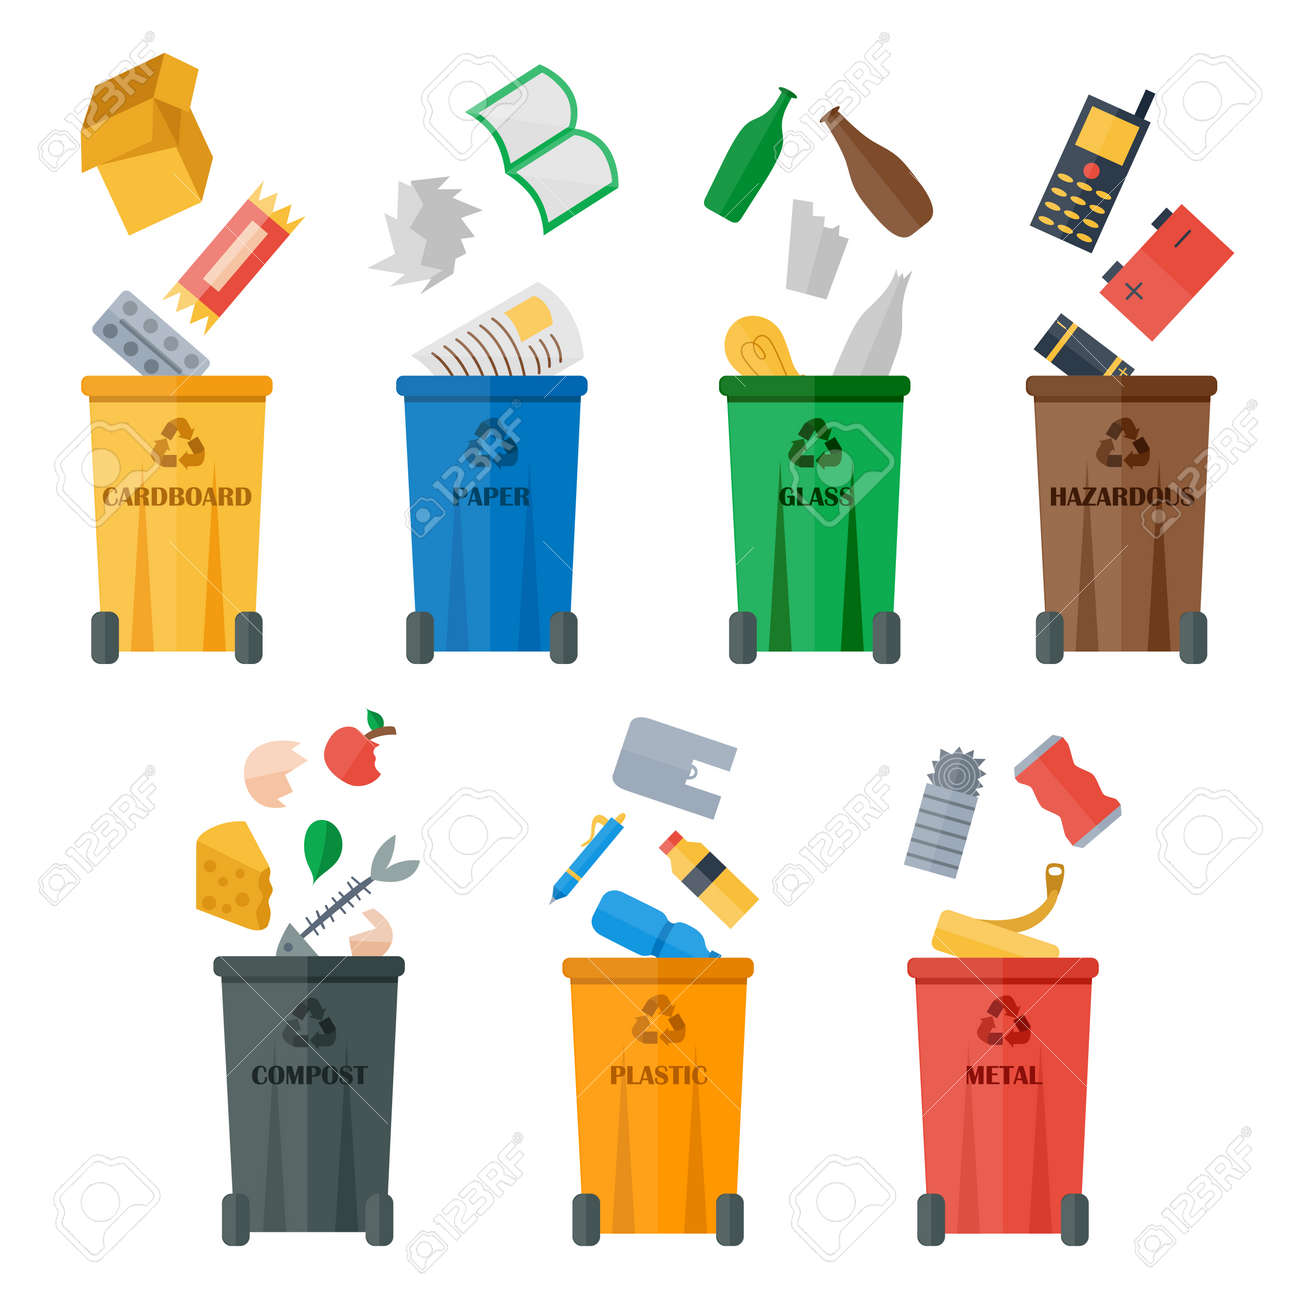 Waste sorting of garbage types set vector. Waste management and recycle concept. Separation of waste on trash metal garbage bins. Sorting waste recycling. Colored garbage cans with waste types vector. - 54707044